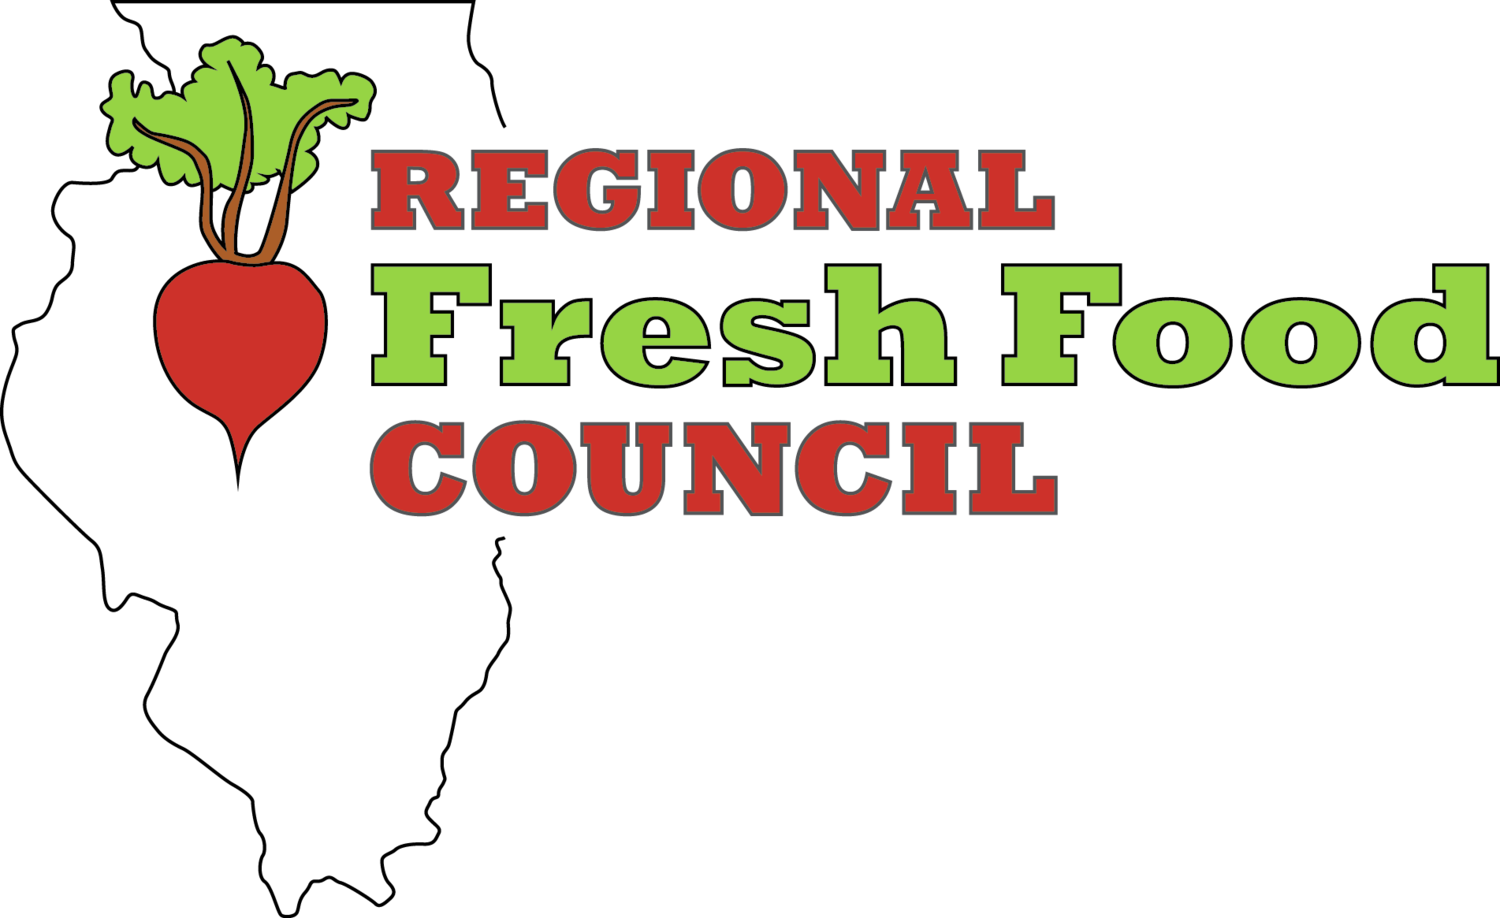 Regional Fresh Food Council